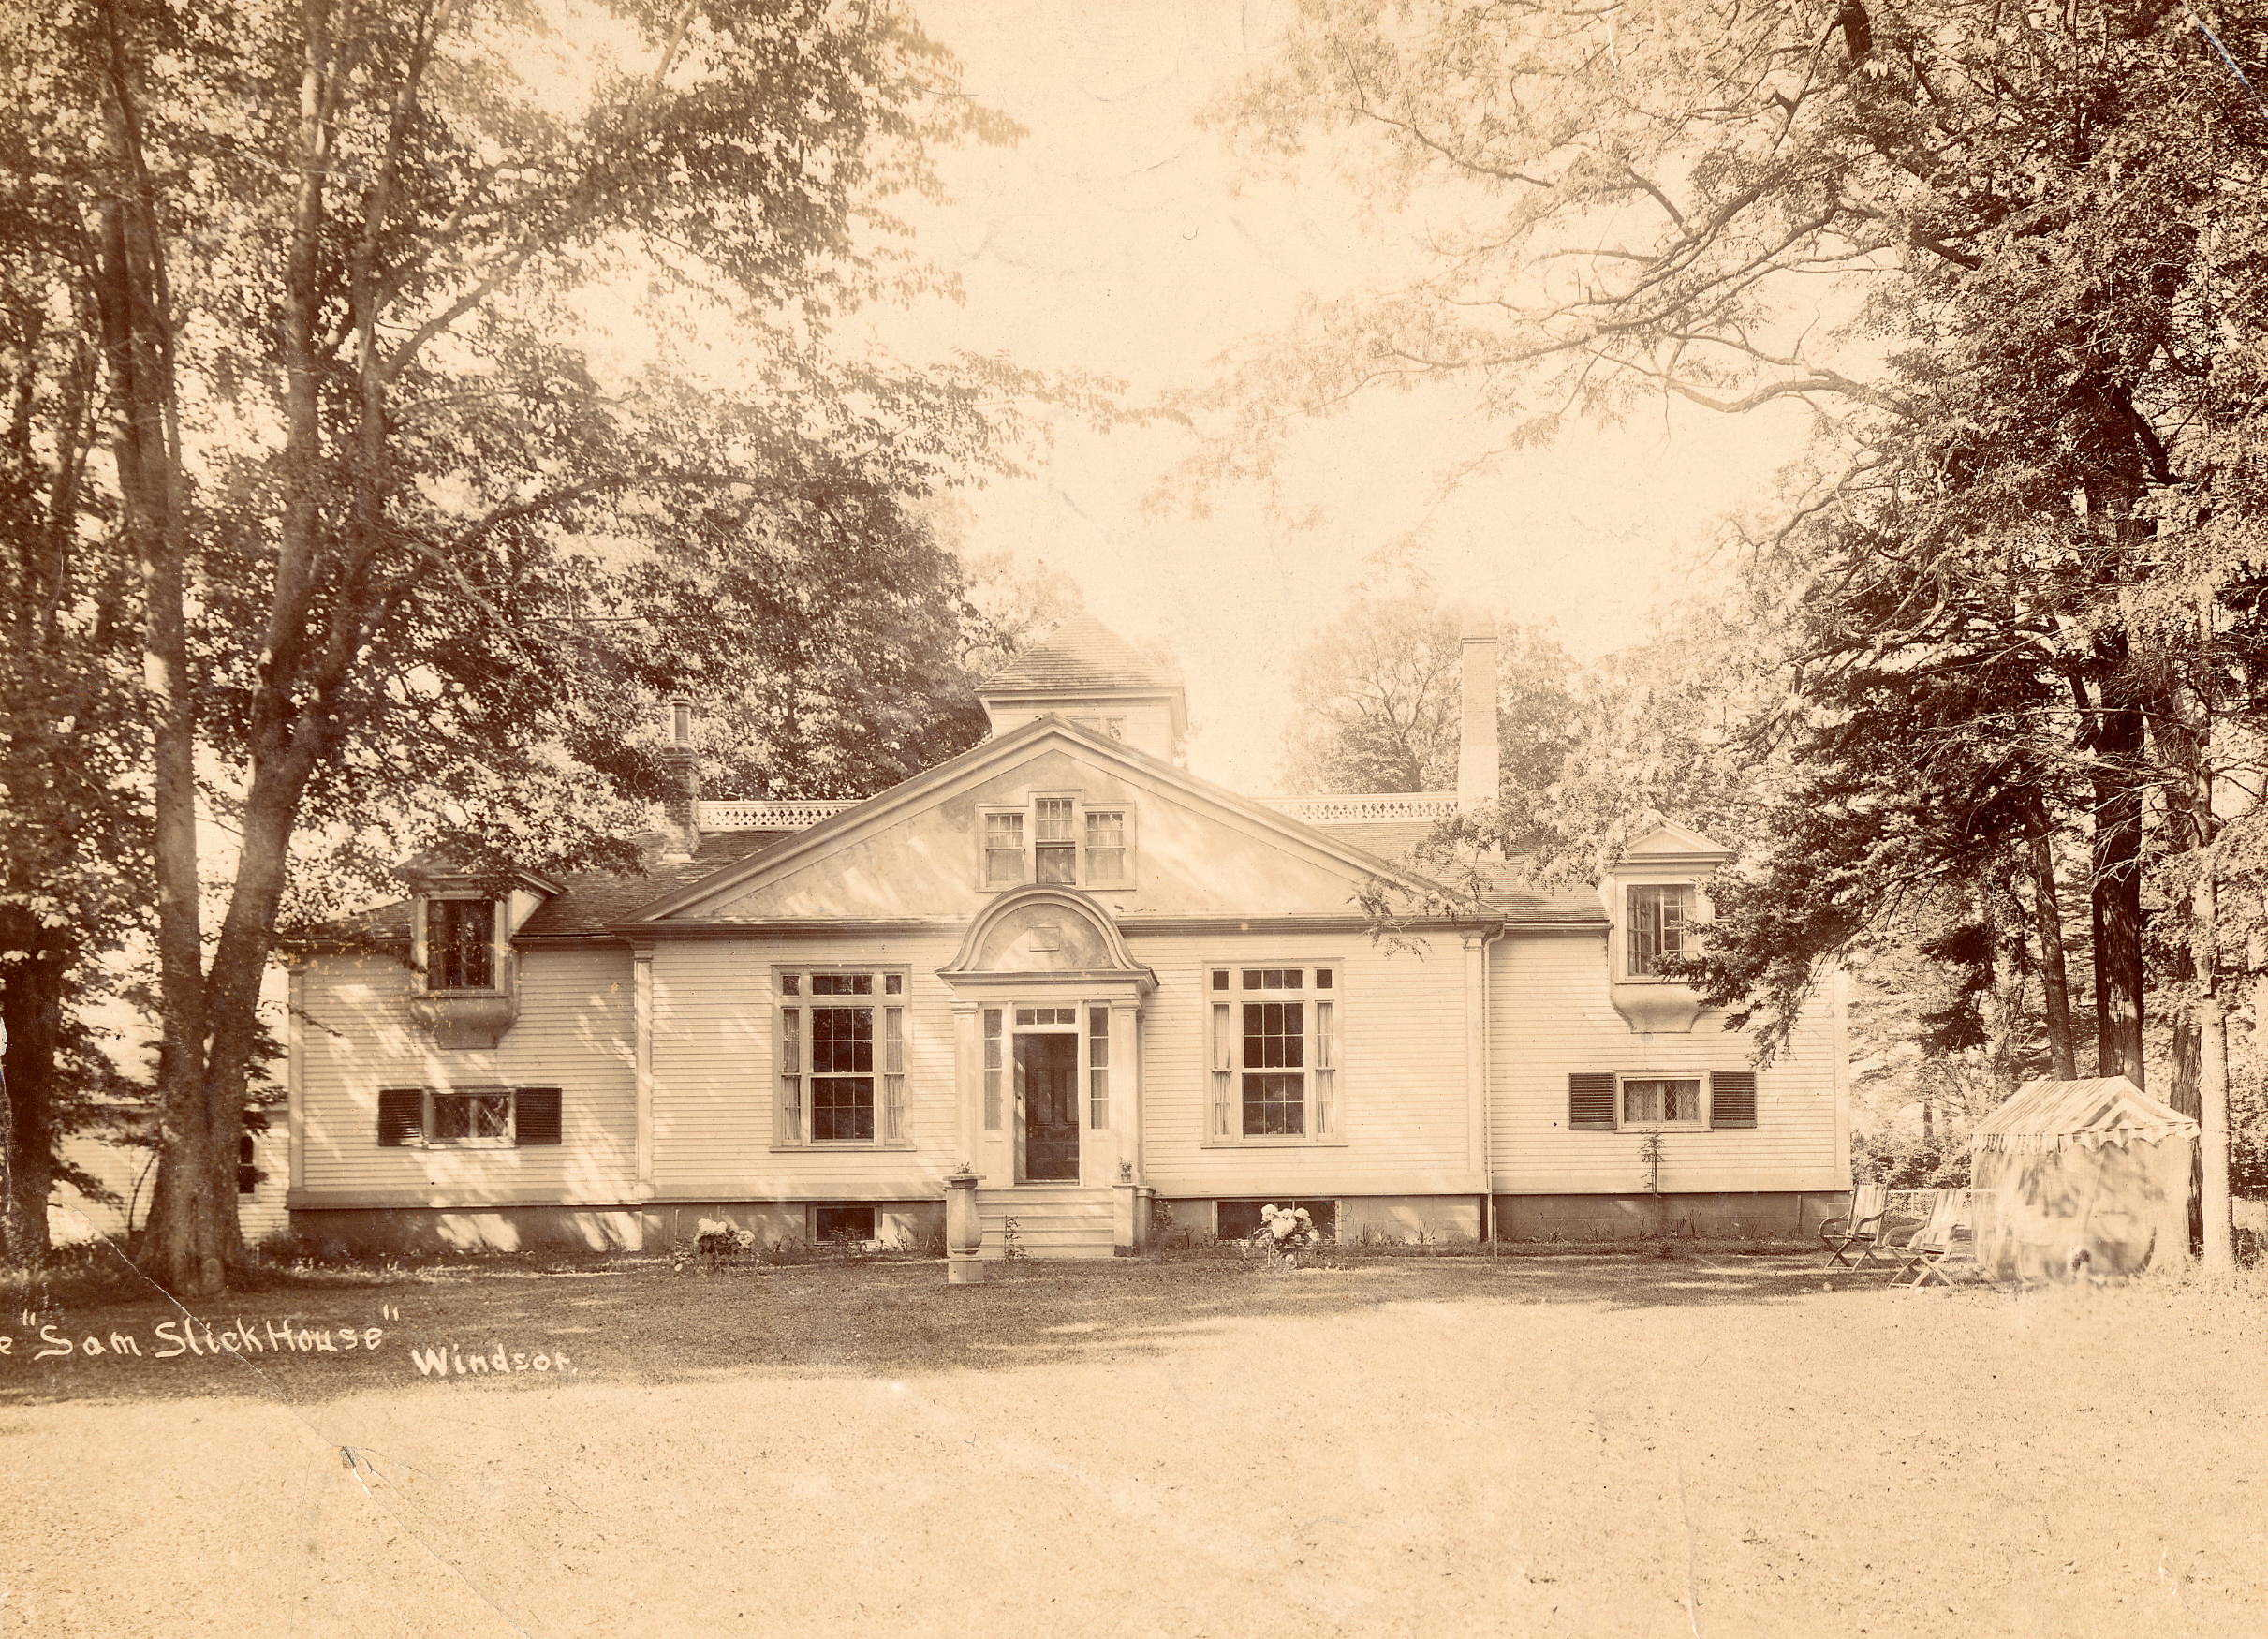 The home of Haliburton, Clifton Grove, circa 1912.